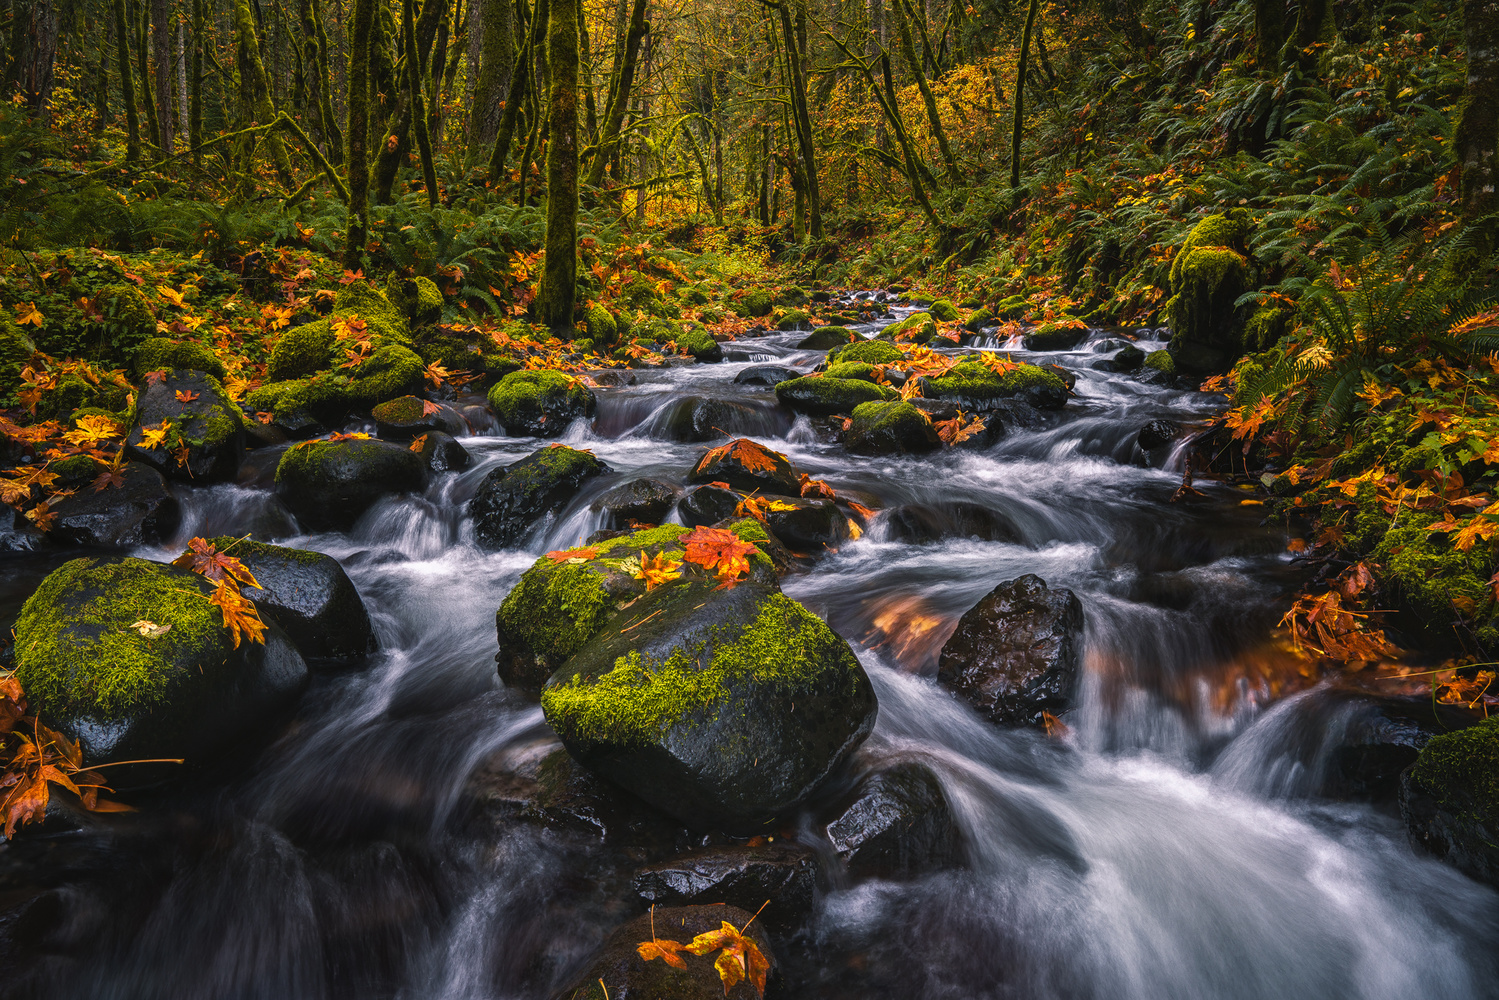 Stream of Autumn Colors by Shumon Saito